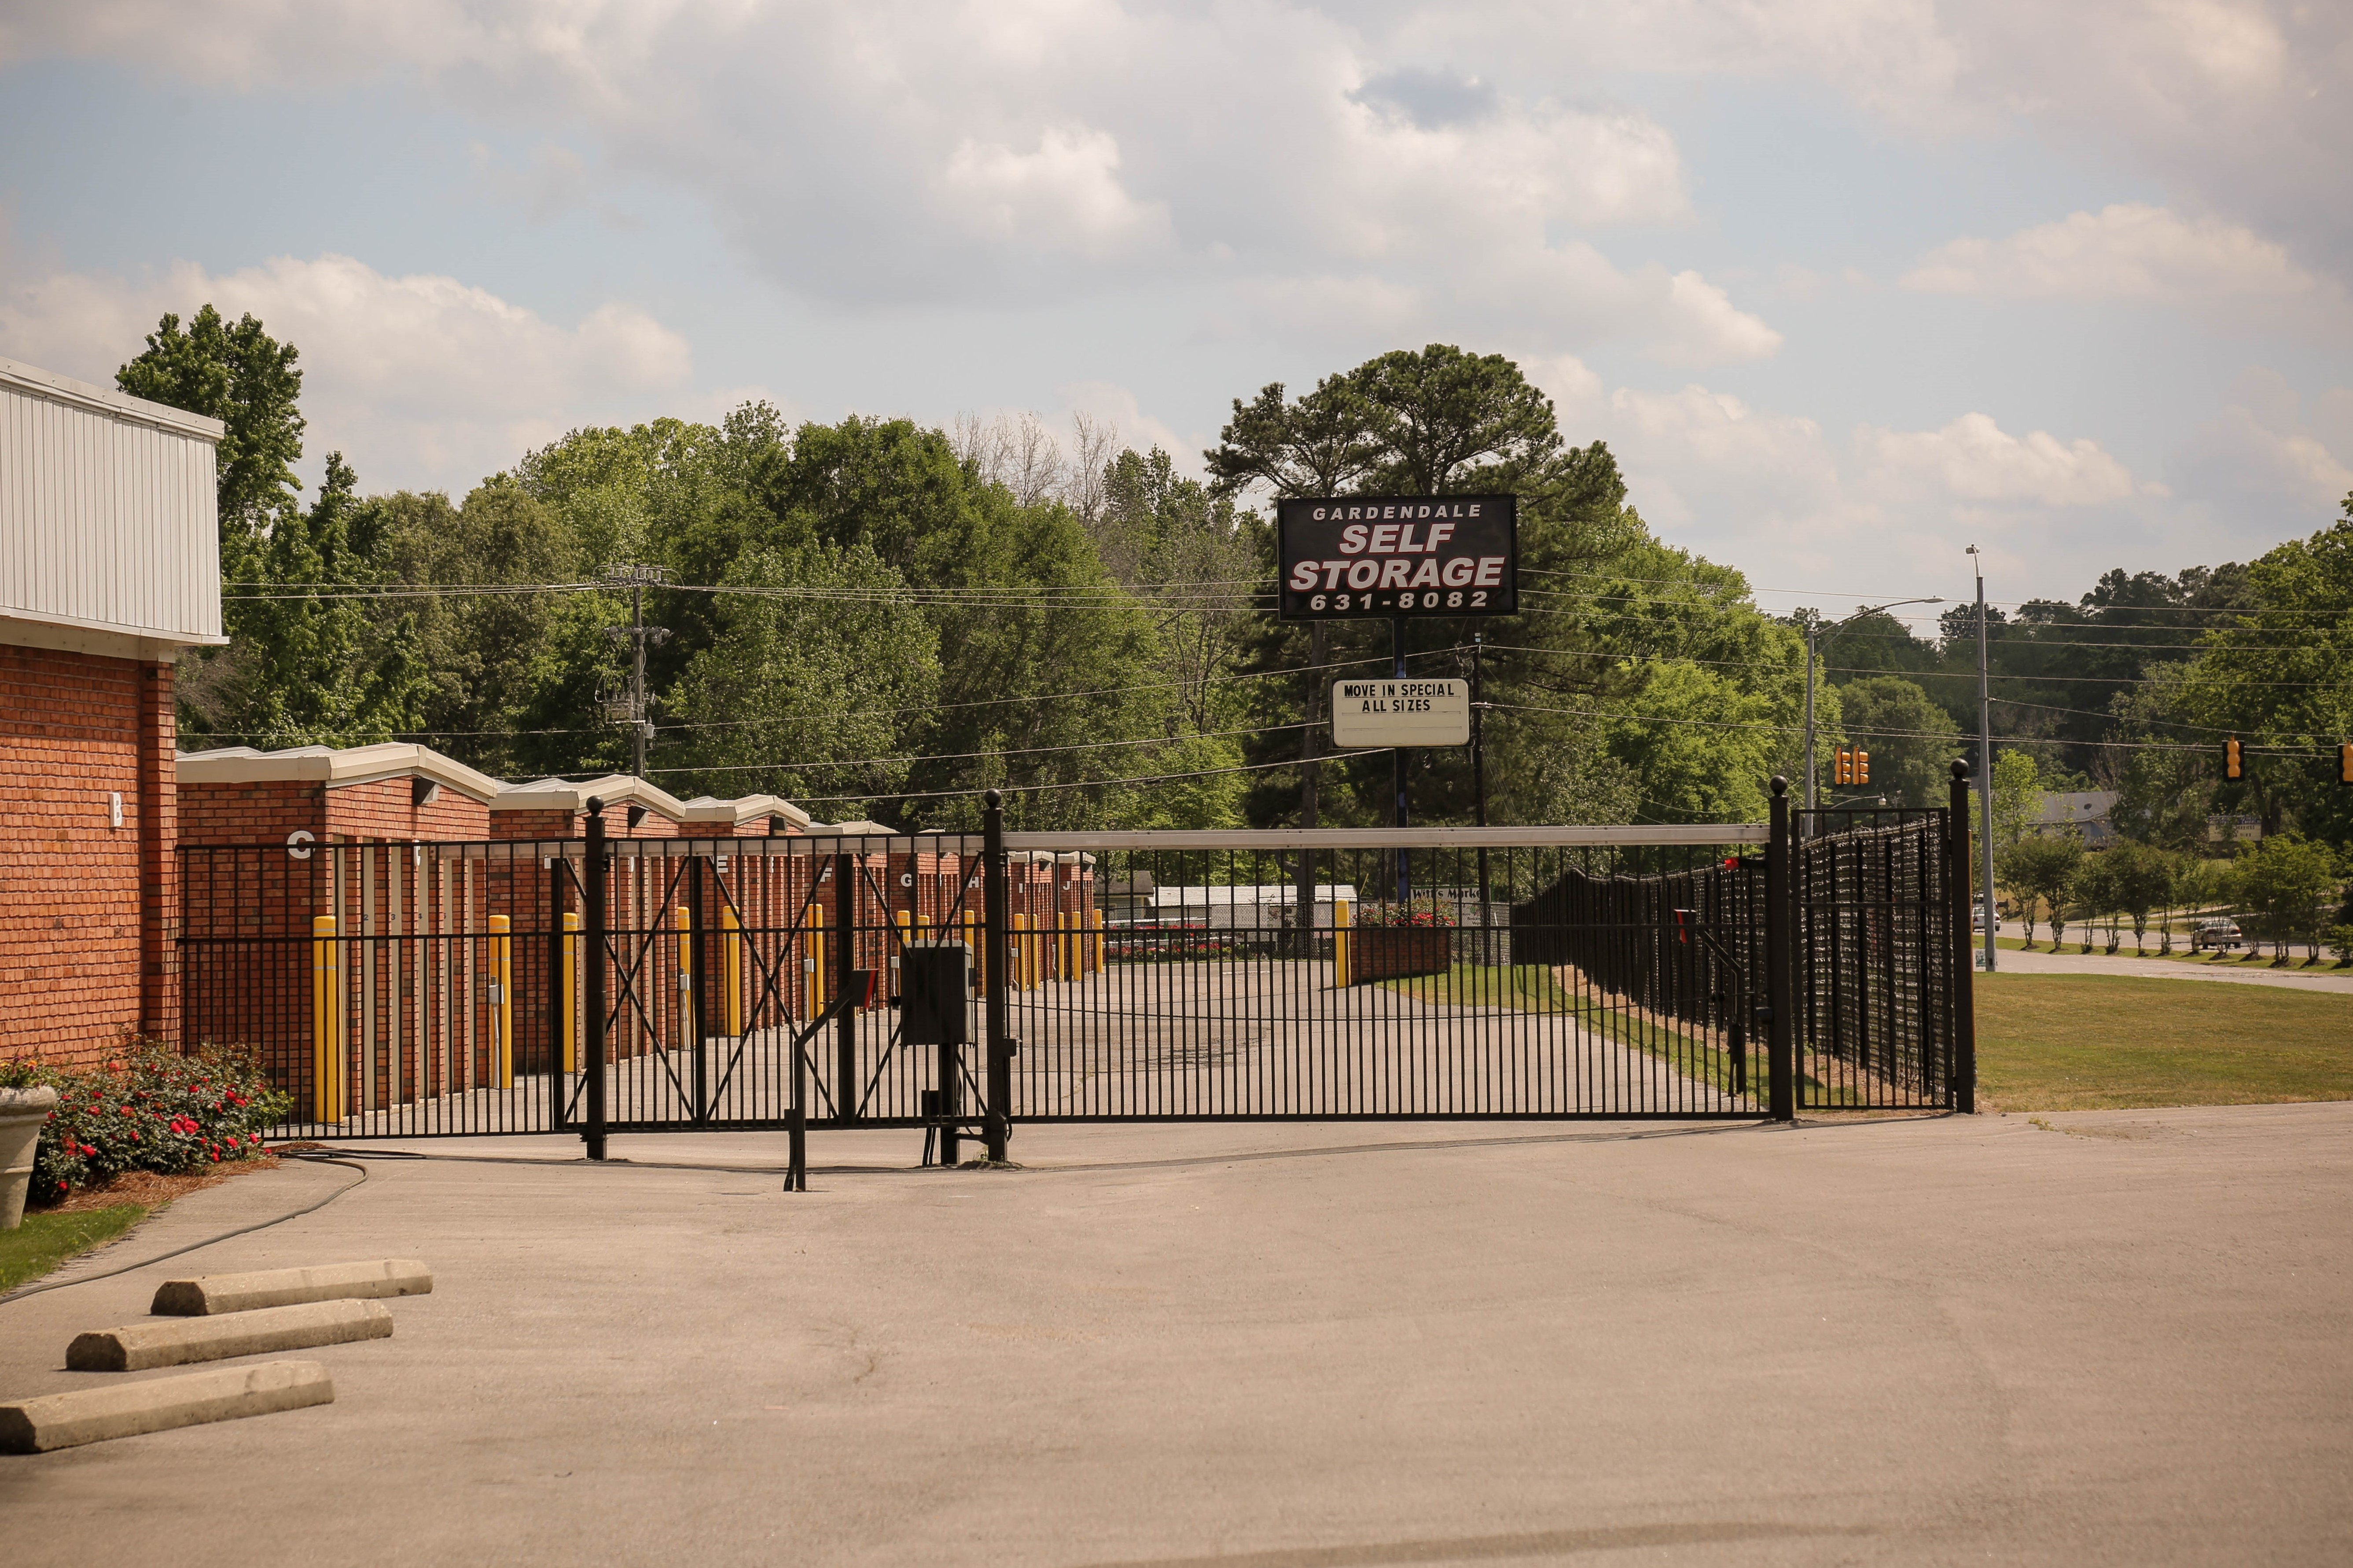 Fenced and Gated Gardendale Self Storage